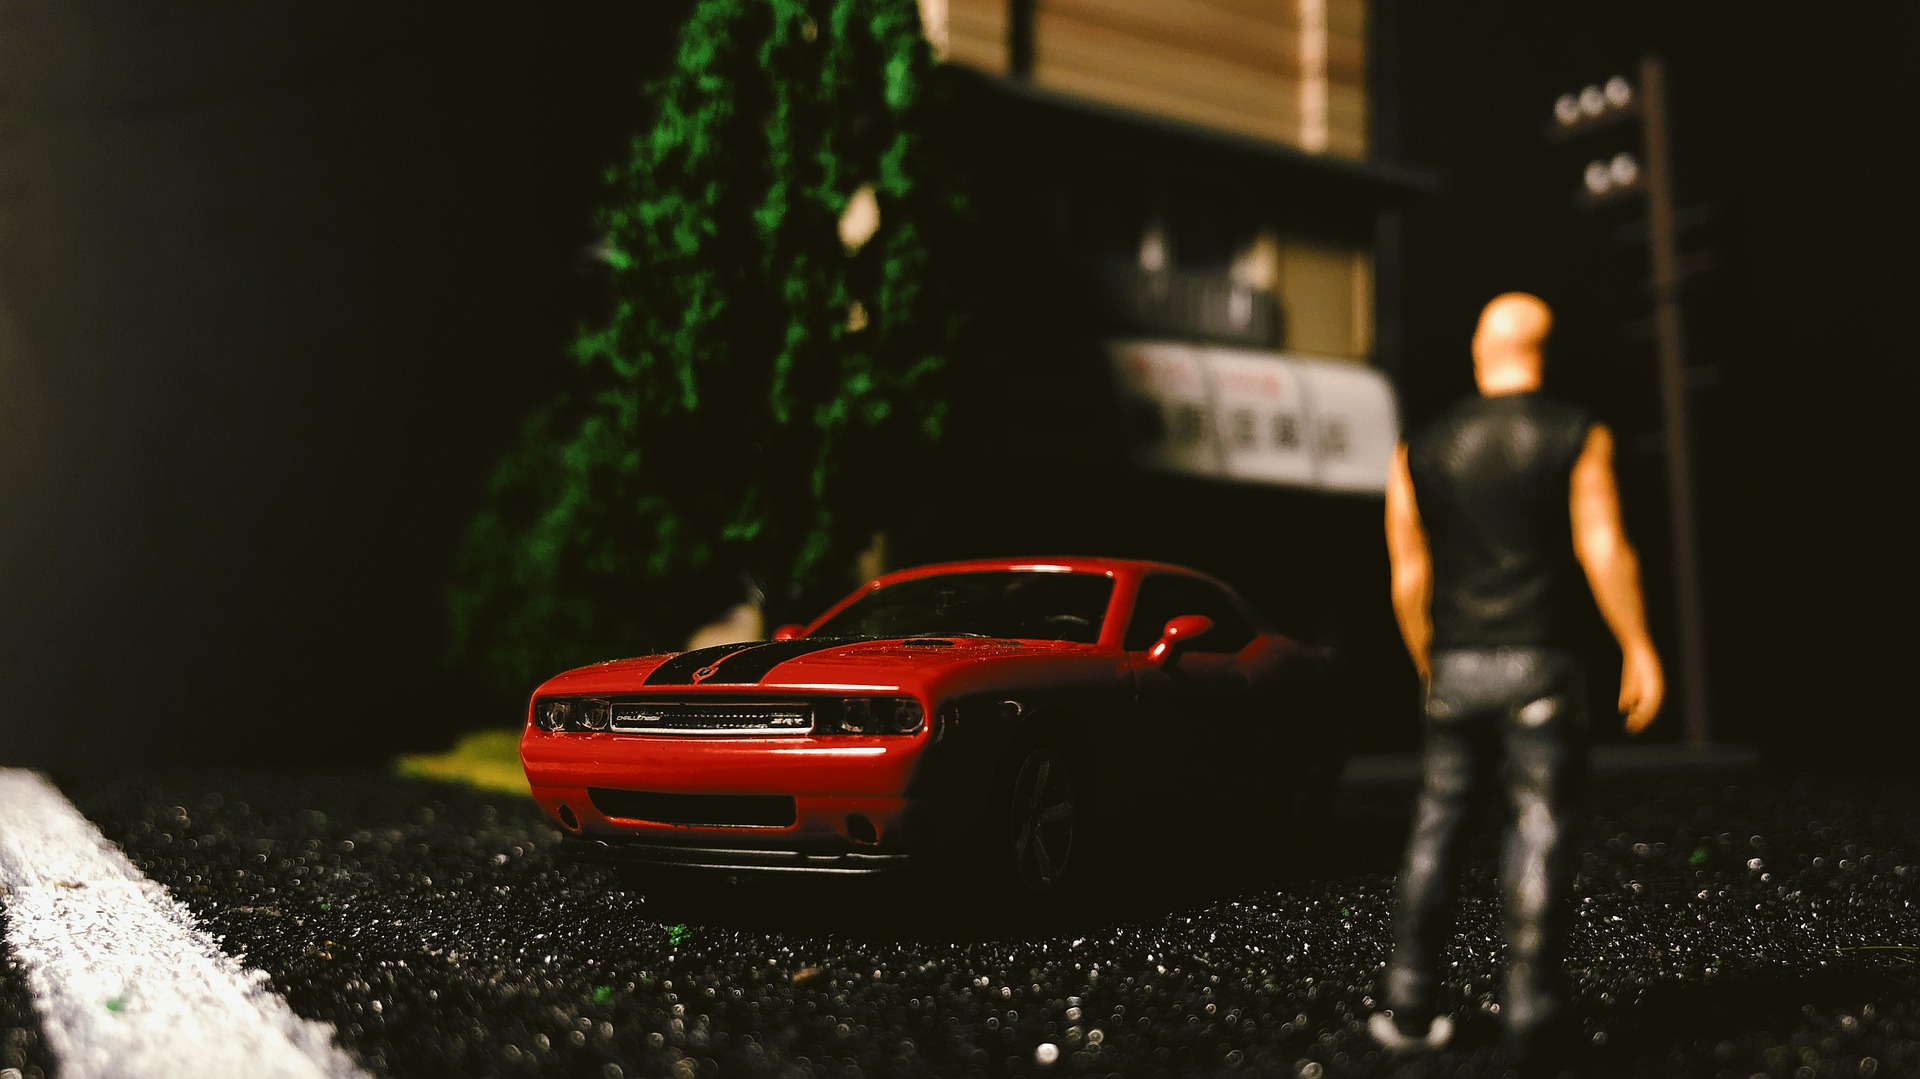 The Fast And Furious Models In The Latest Trailer Look Sick!